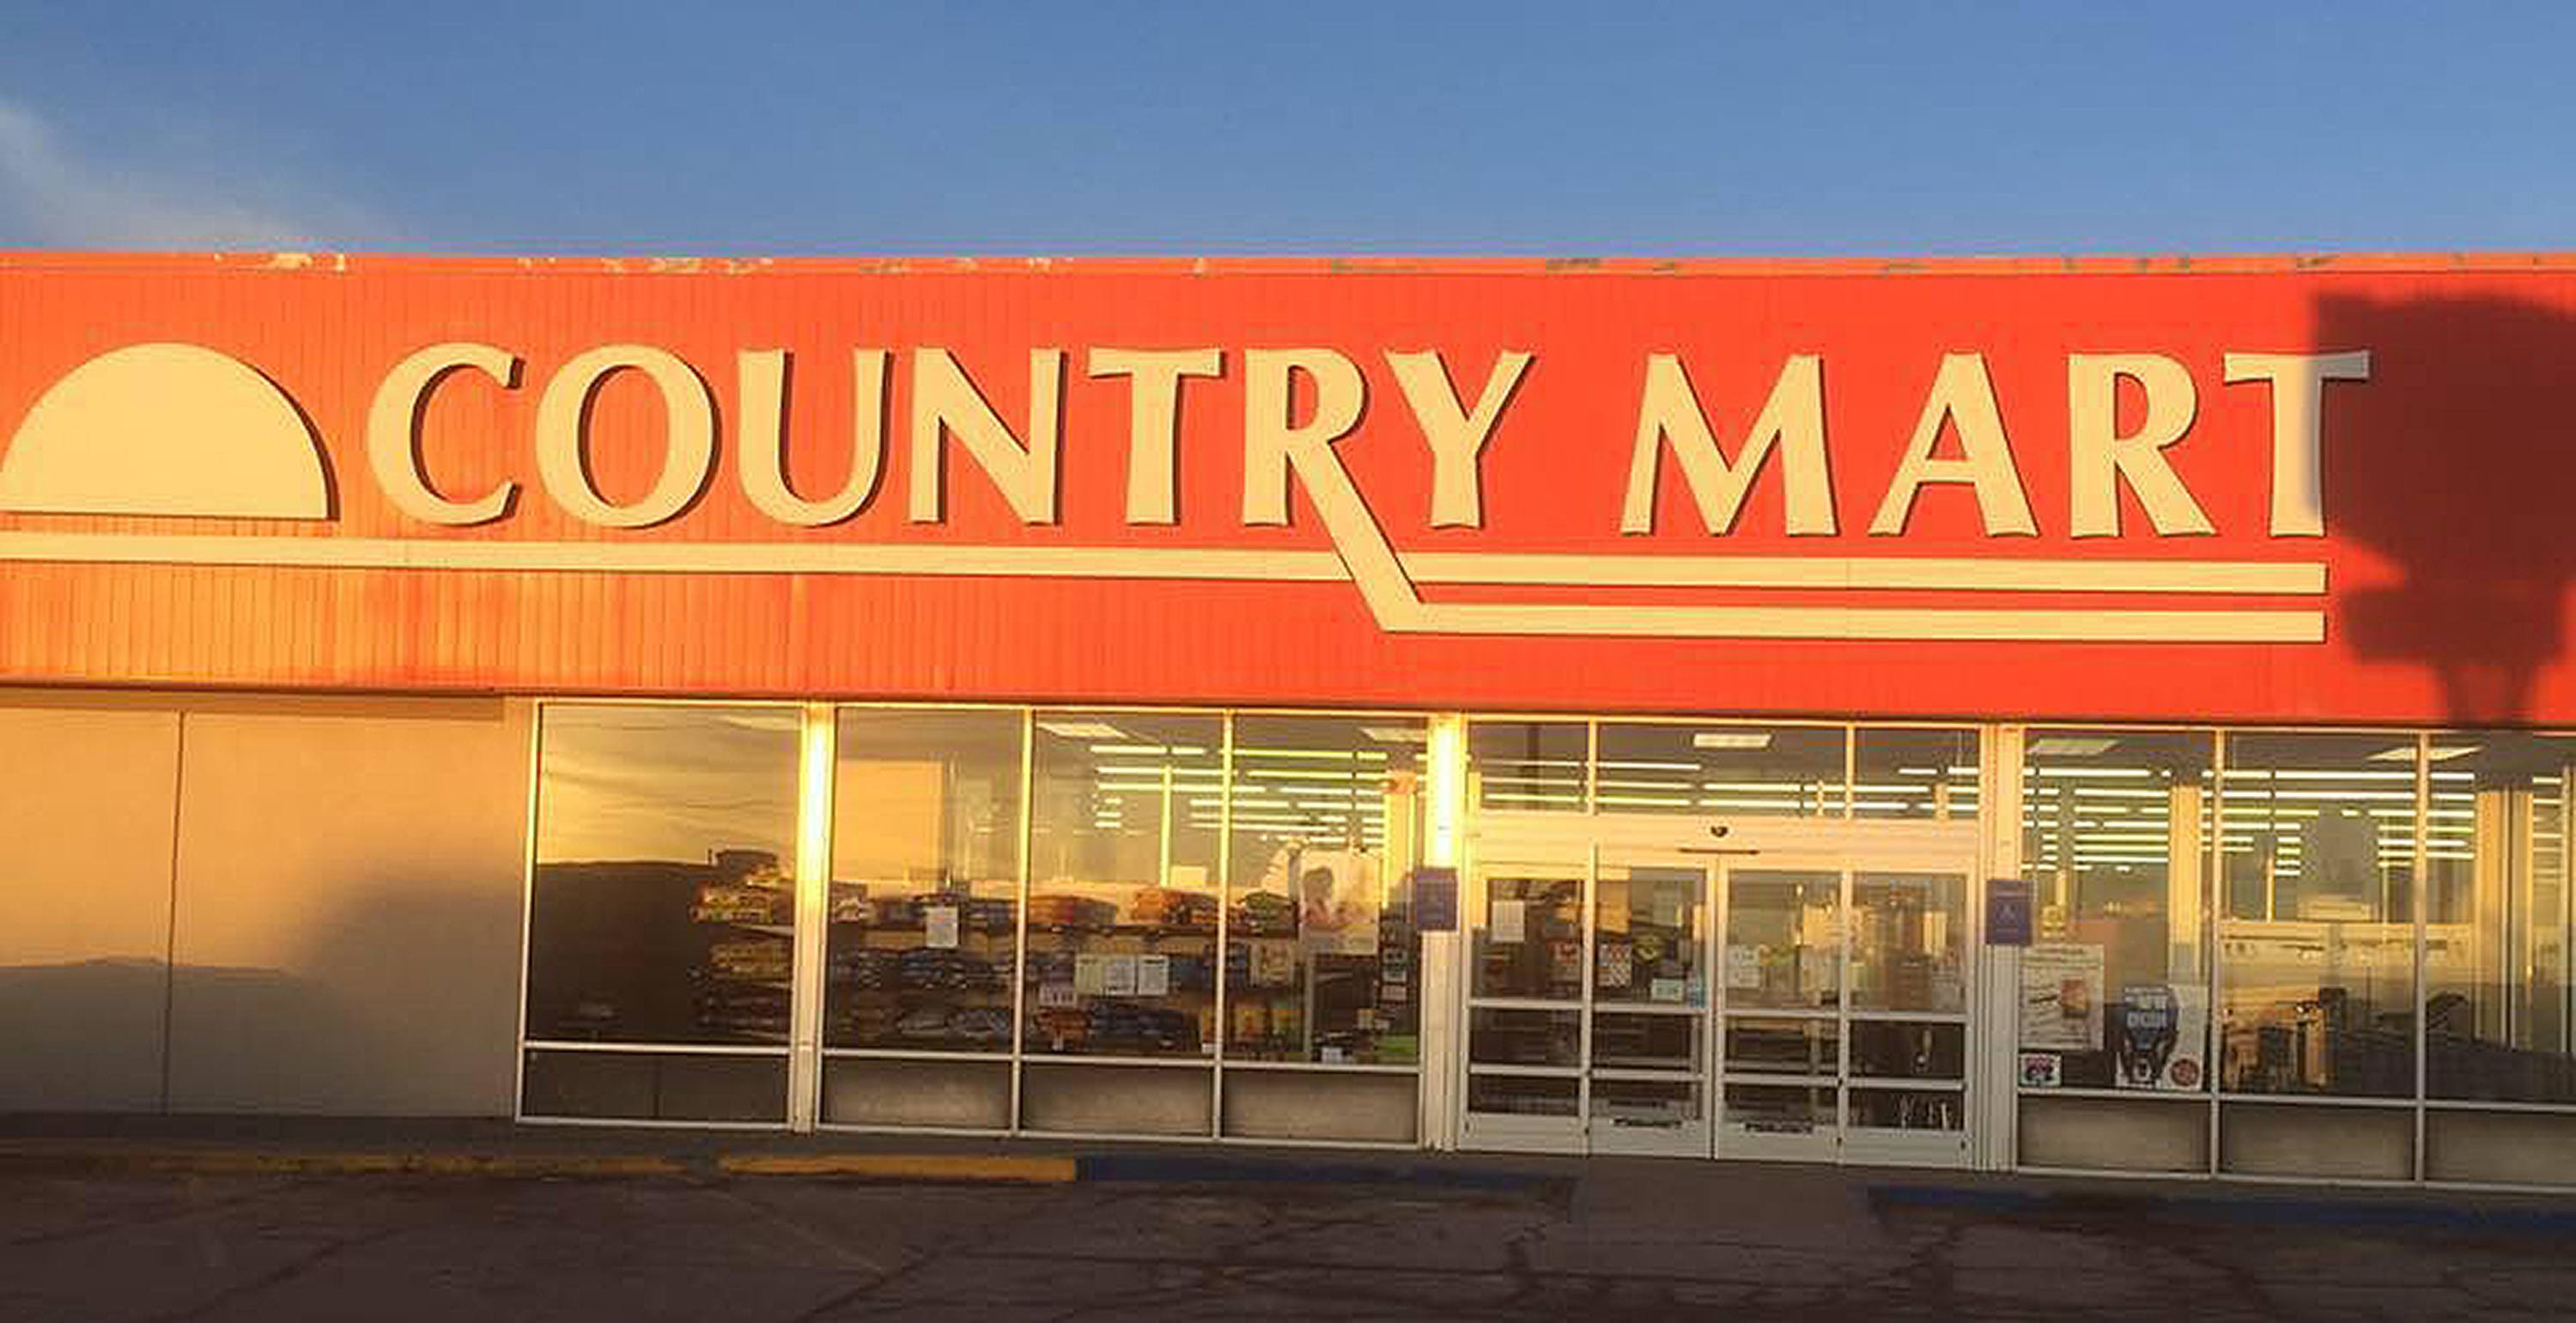 Exterior Store Front - Garretts Country Mart